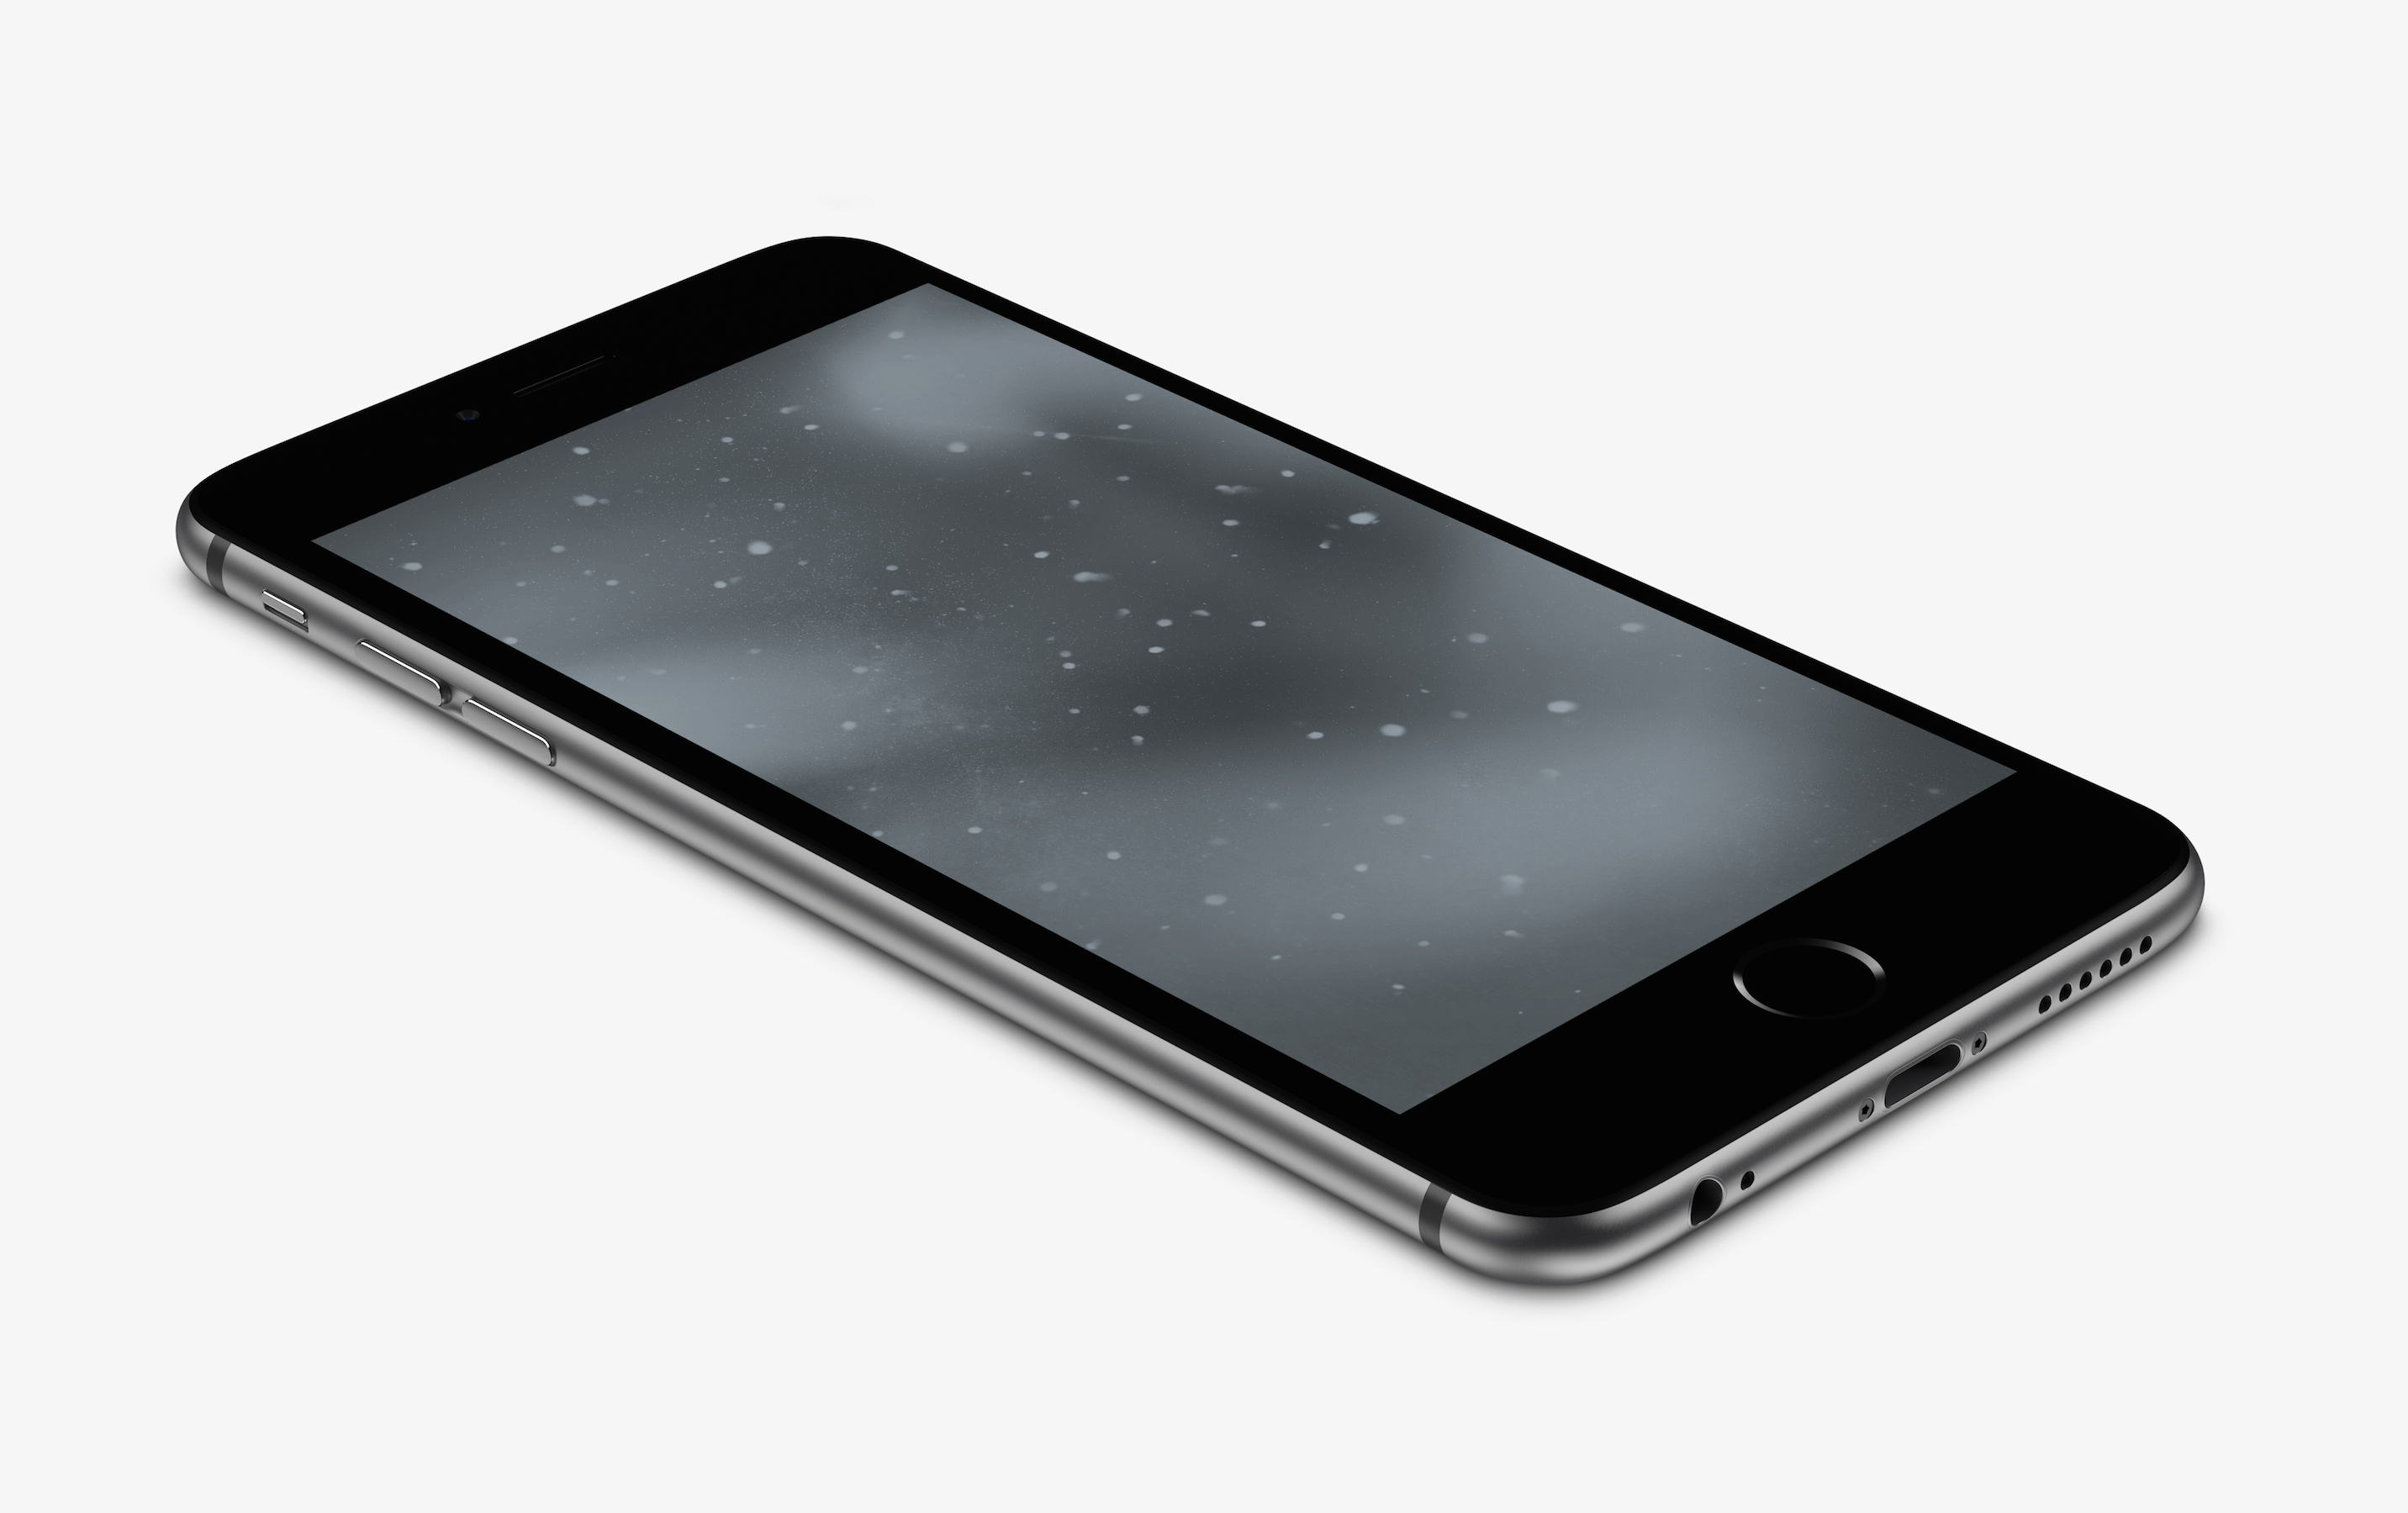 Space grey wallpaper for iphone 6 and 6 plus by - Wallpaper iphone 5s space grey ...